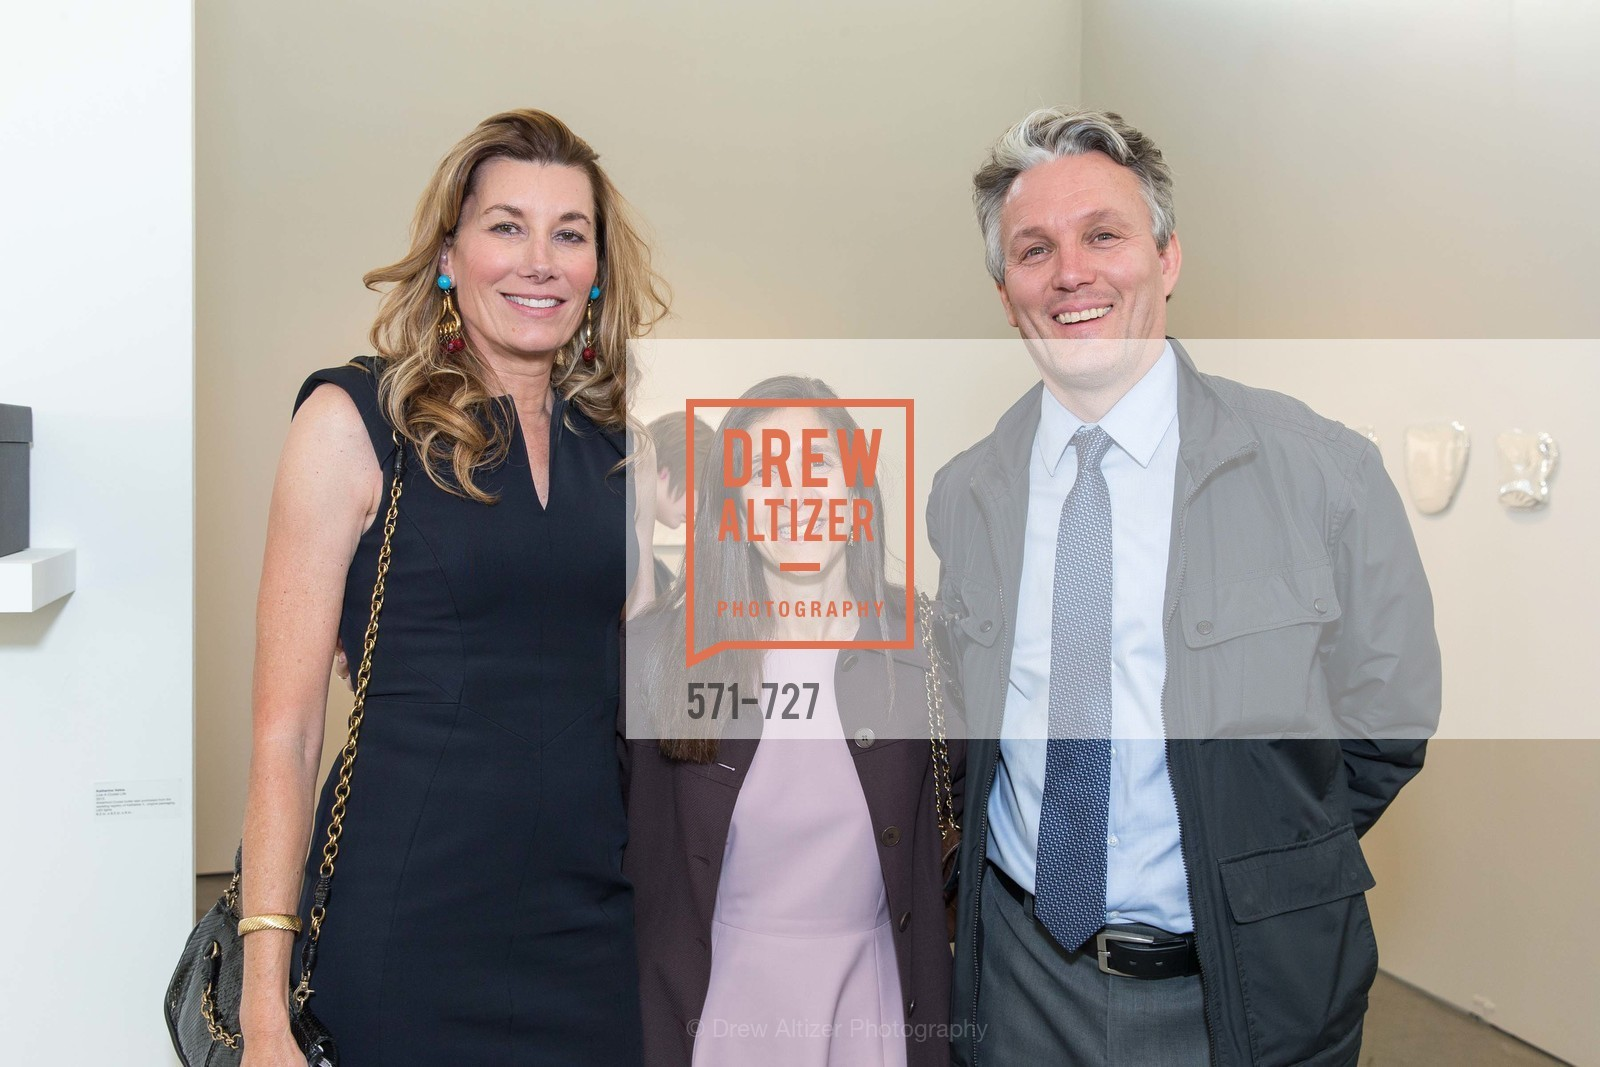 Susan Dunlevy, Lisa Podos, Julian Cox, SAN FRANCISCO ART INSTITUTE Gala Honoring Art Visionary and Advocate ROSELYNE CHROMAN SWIG, US, May 13th, 2015,Drew Altizer, Drew Altizer Photography, full-service agency, private events, San Francisco photographer, photographer california